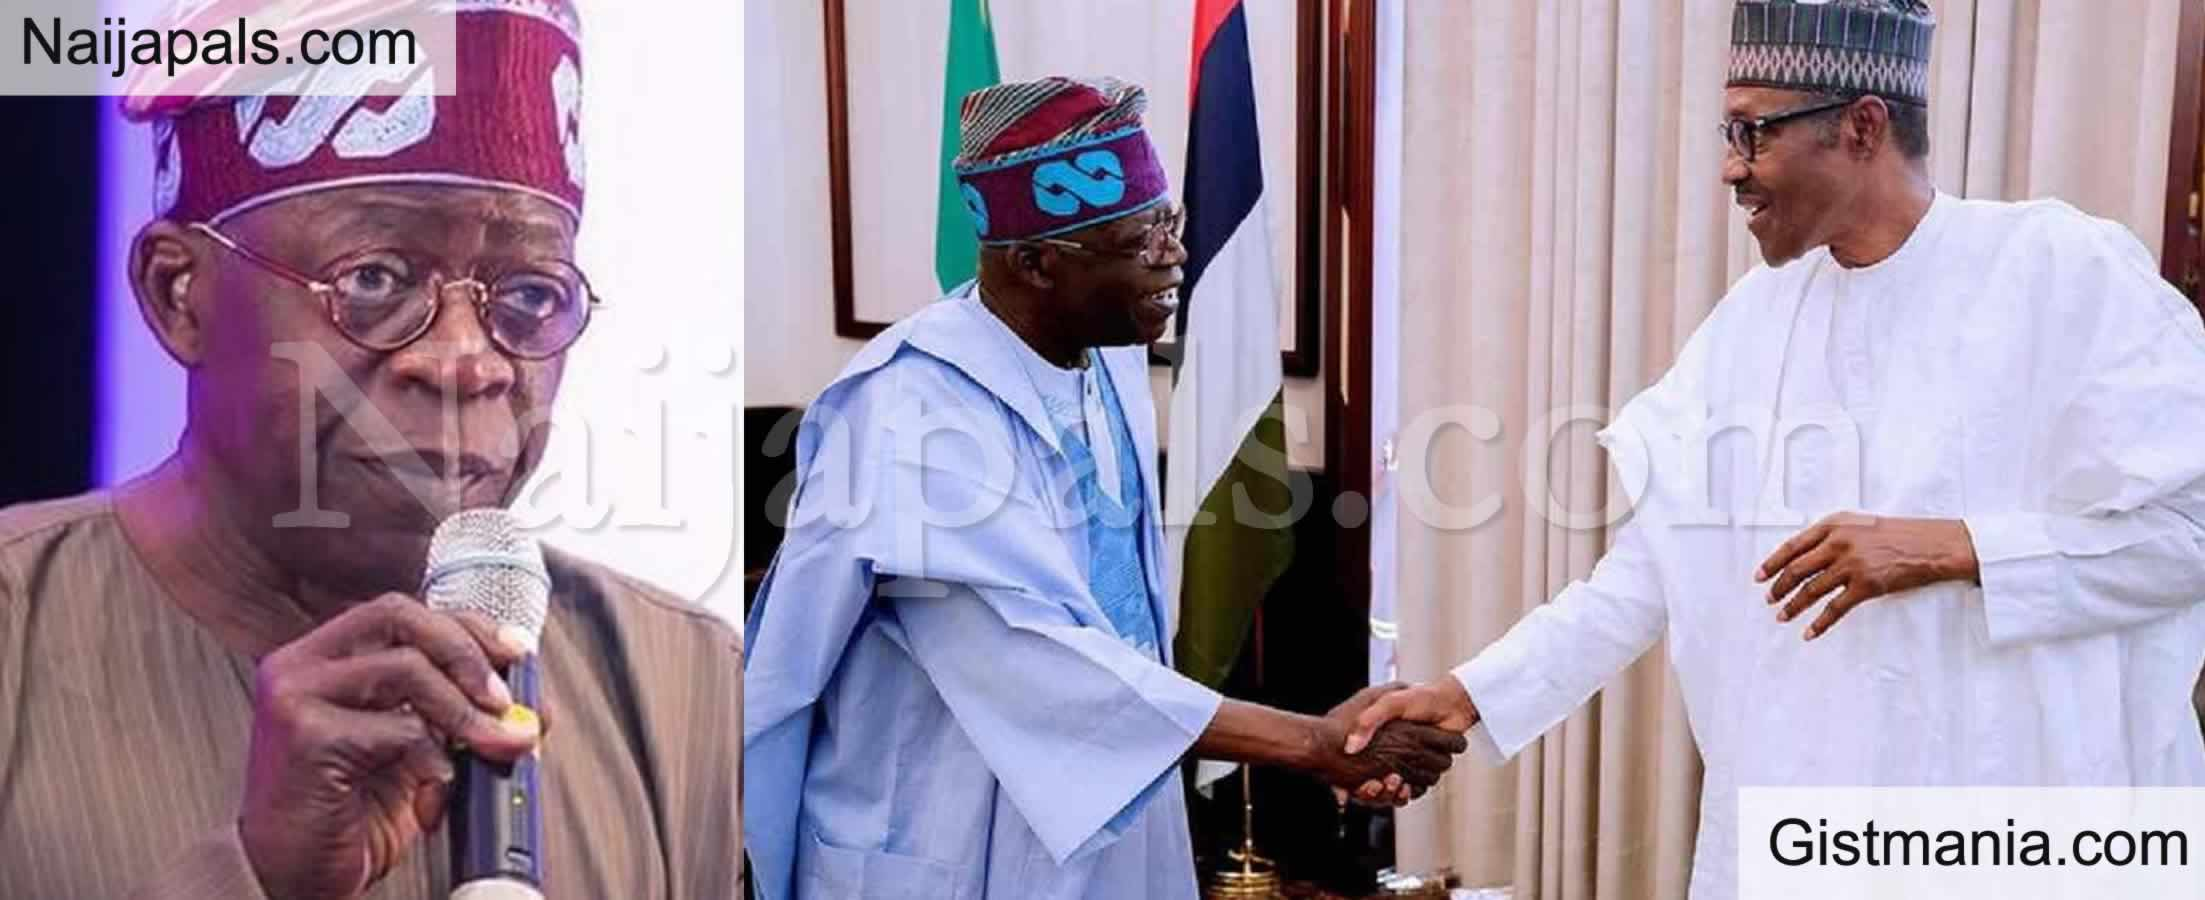 "<img alt='.' class='lazyload' data-src='https://img.gistmania.com/emot/comment.gif' /> <b>""More Effort Is Needed To Fight Against Boko Haram"" -Bola Tinubu Says Over Killings Of Borno Farmers</b>"